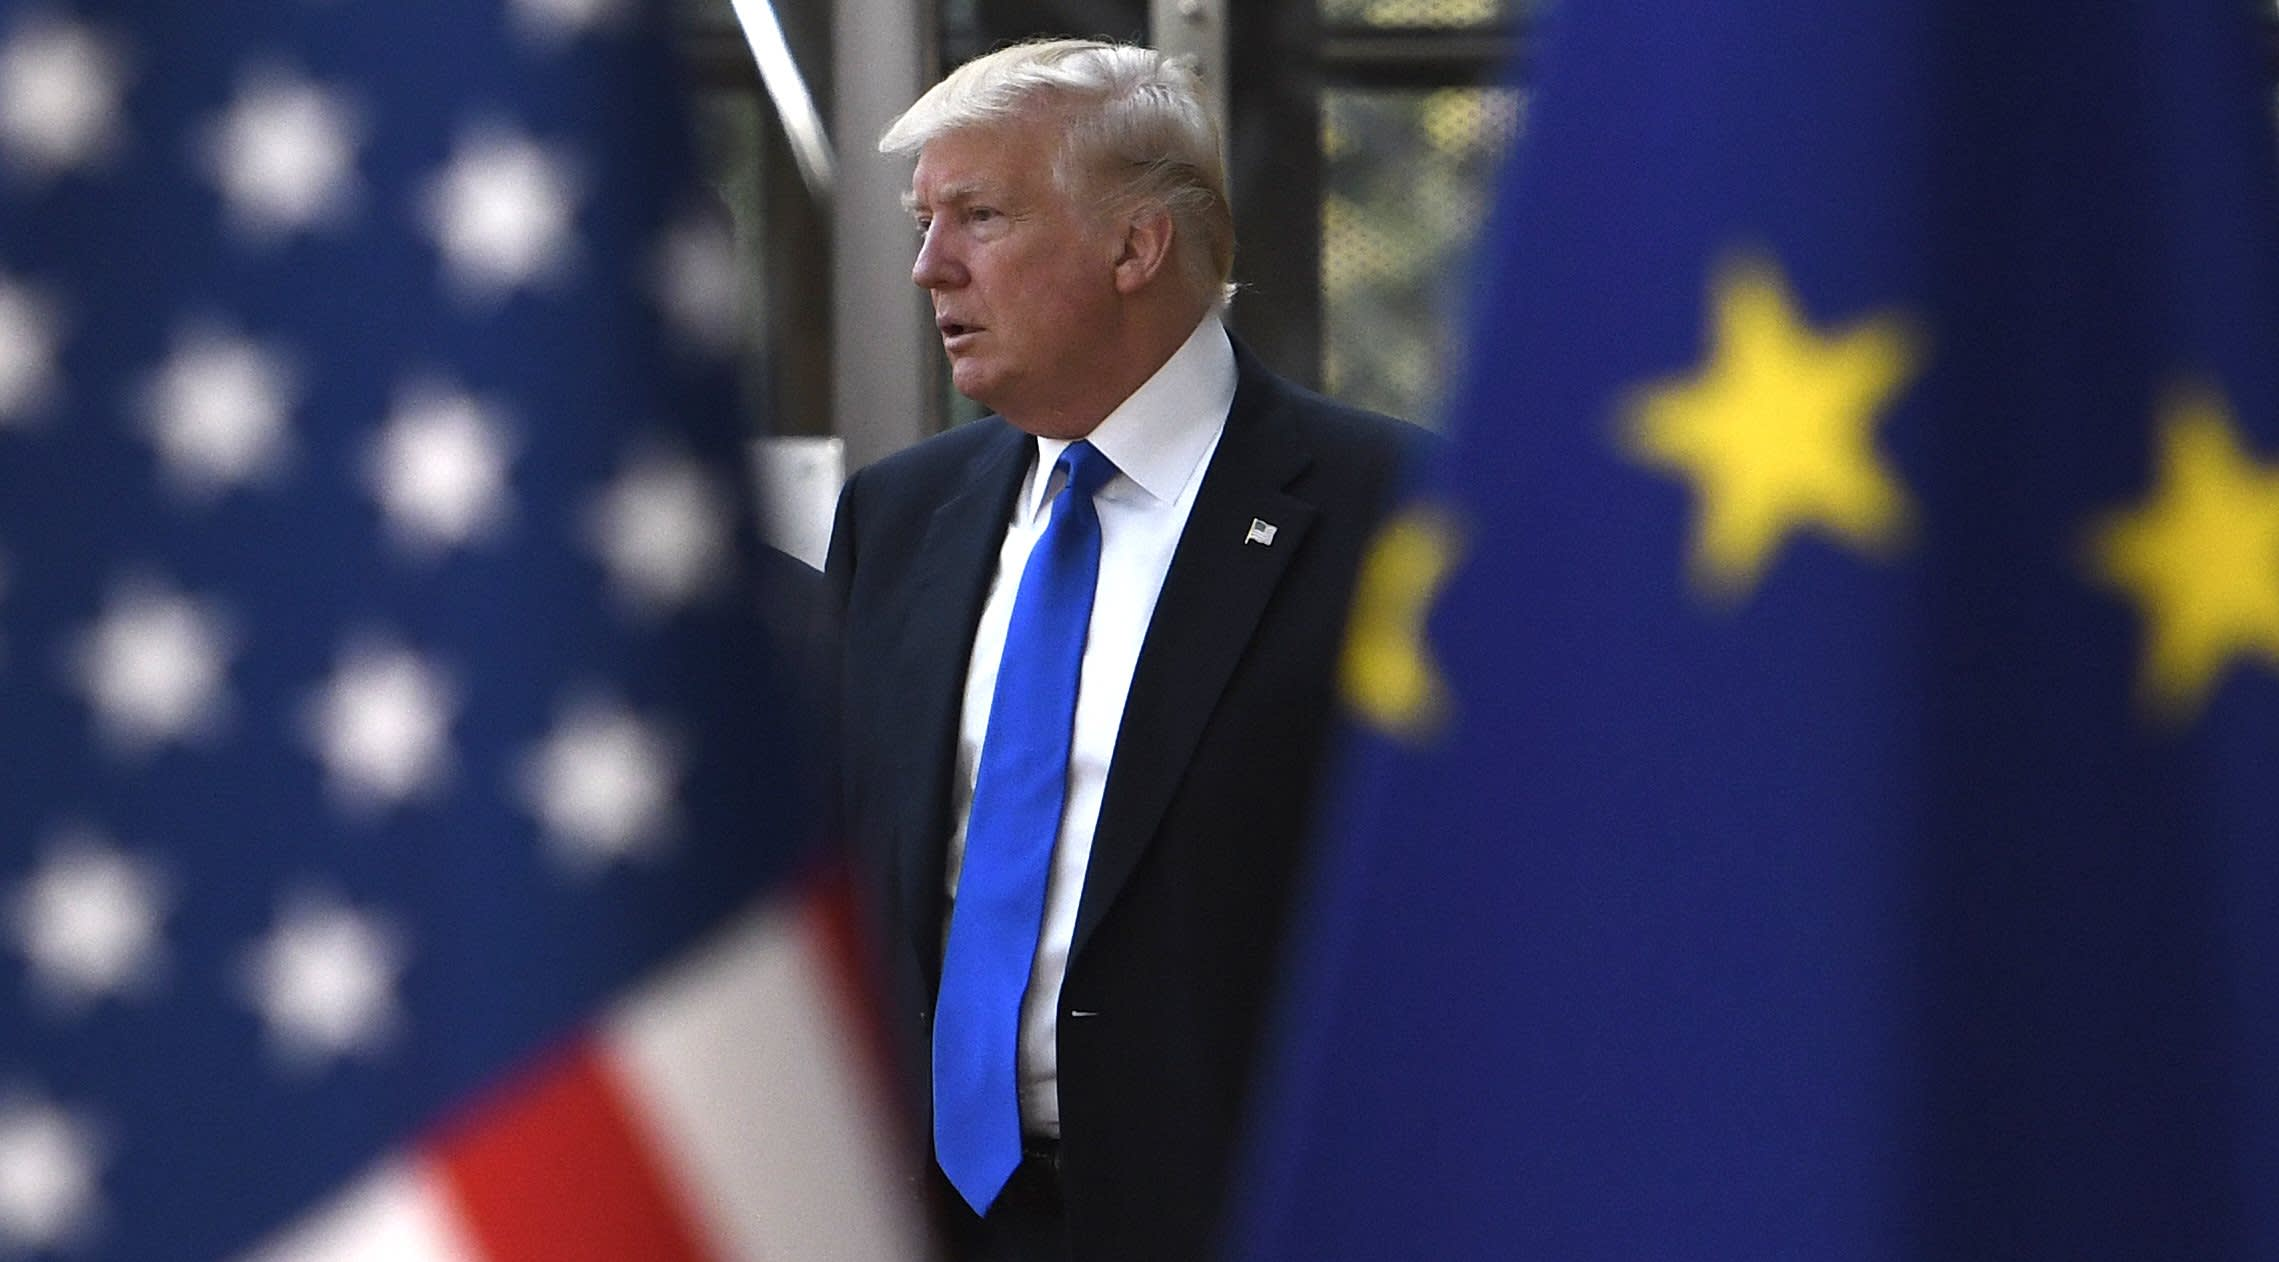 American President Donald Trump seen in between the flags of the U.S. and the European Union,